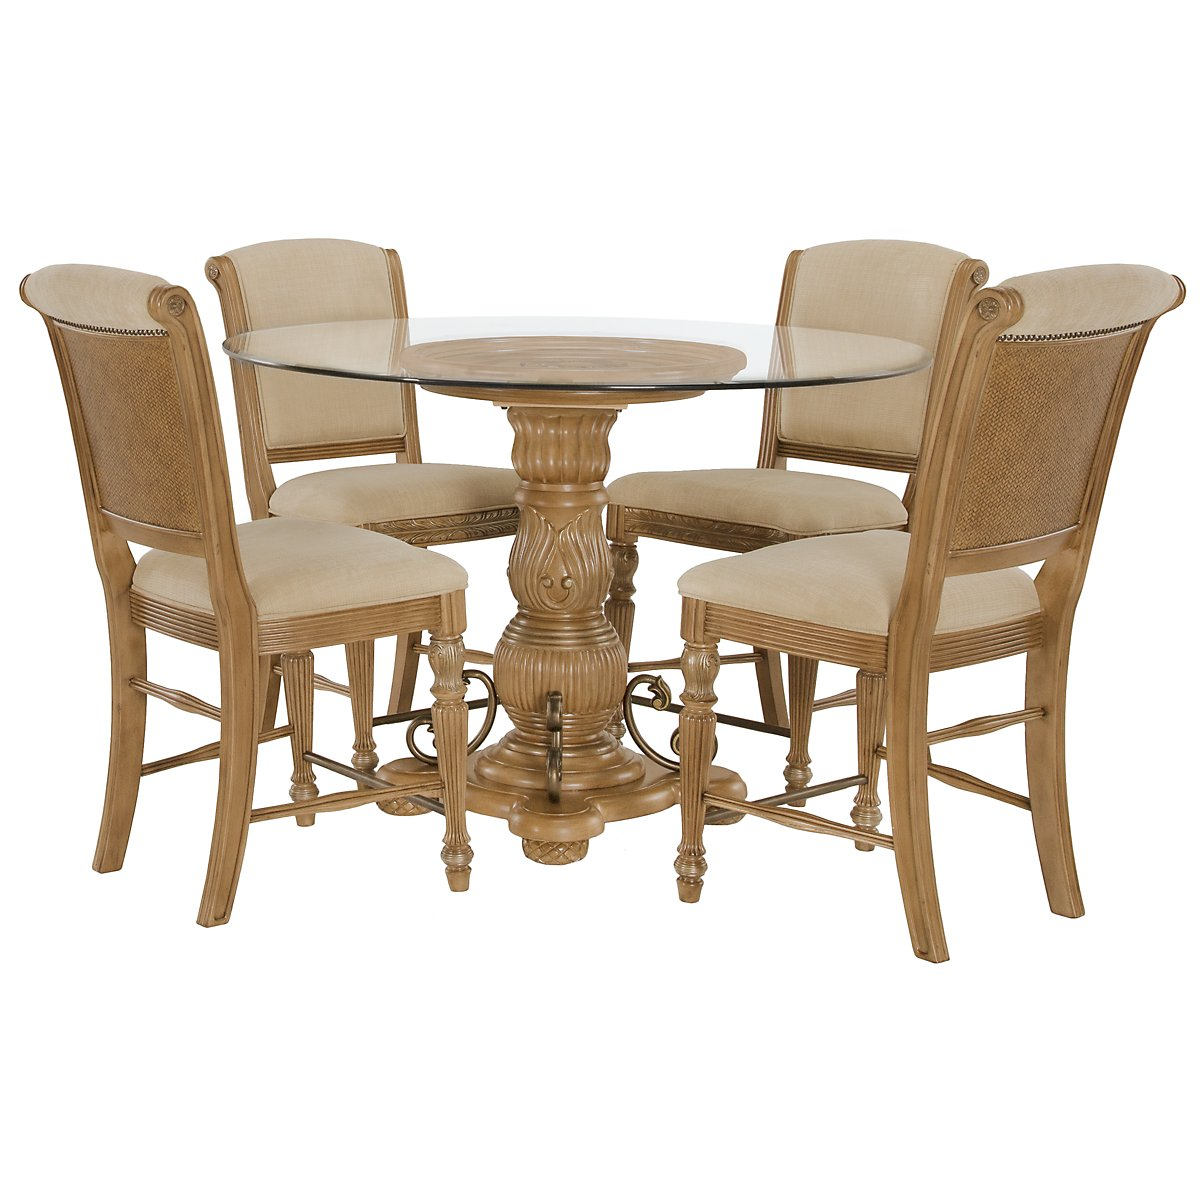 Tradewinds Light Tone Glass High Table & 4 Upholstered Barstools